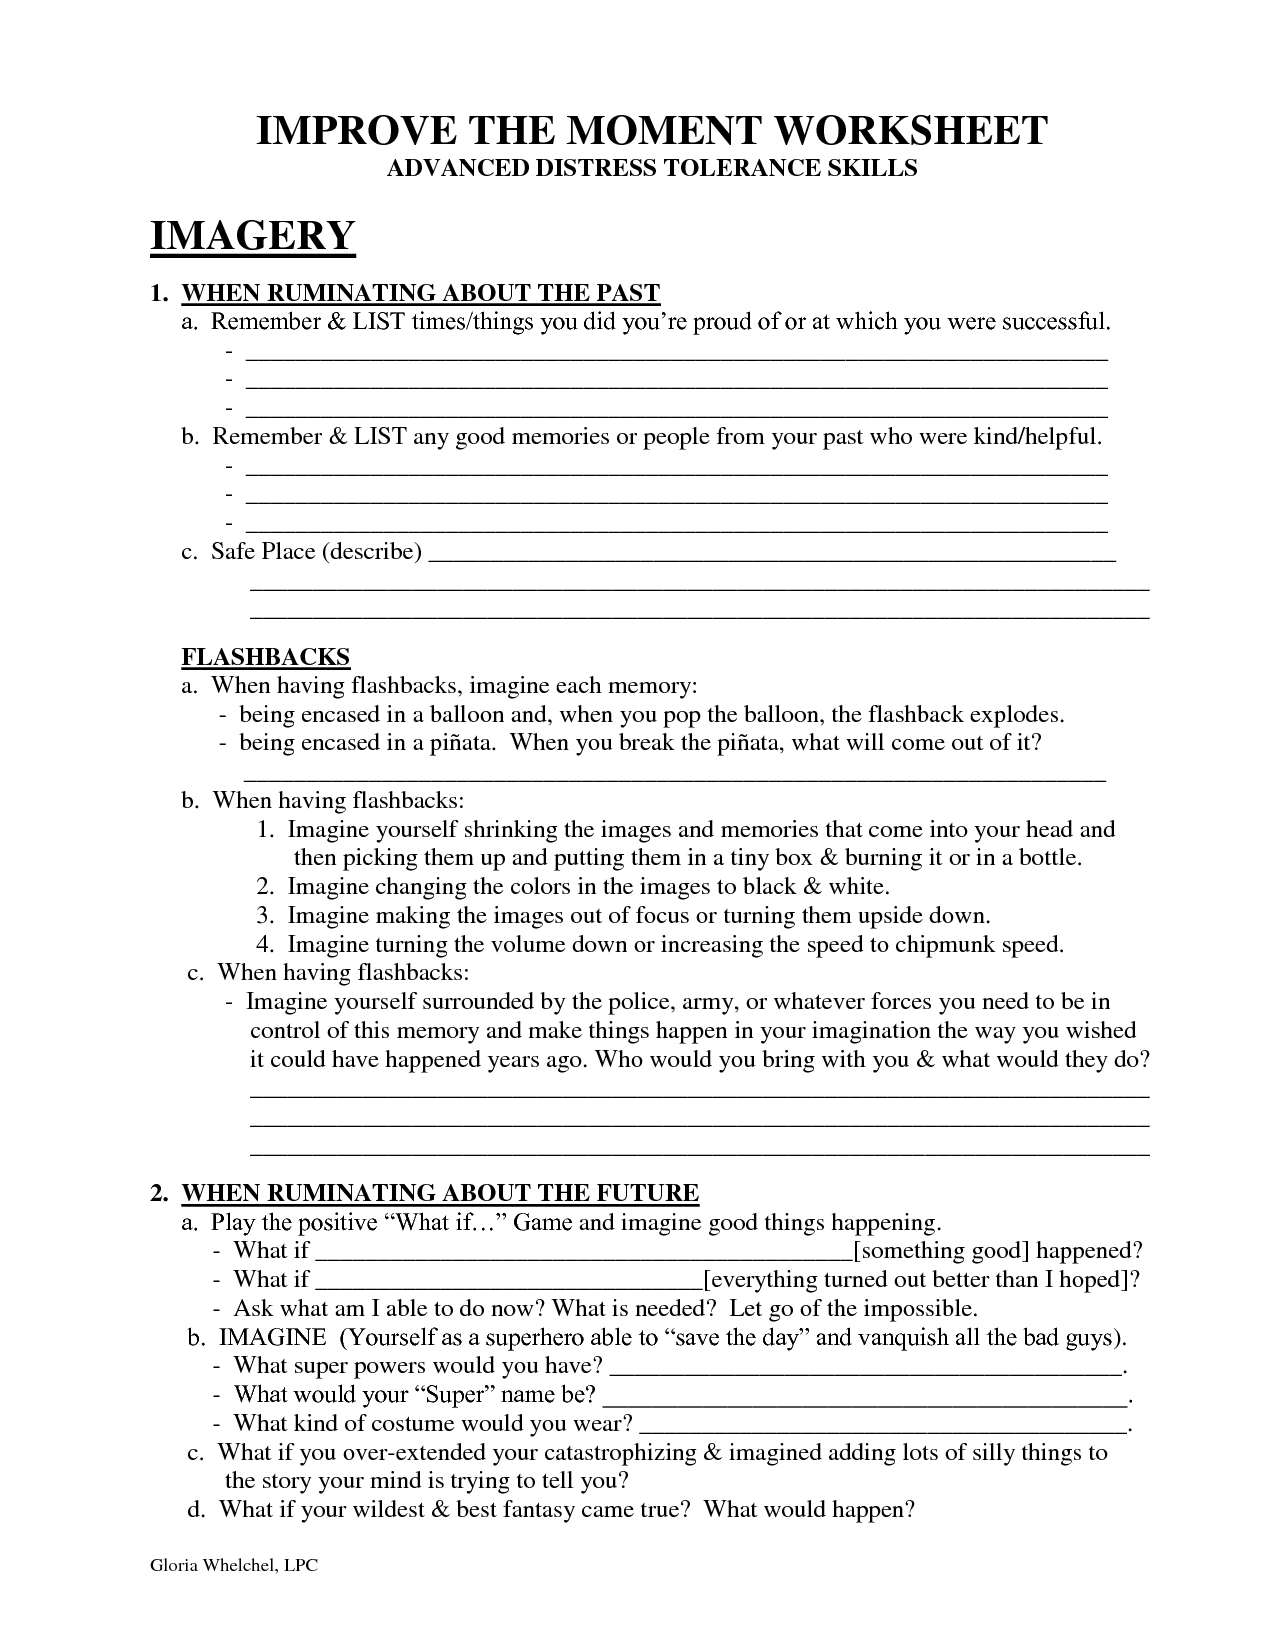 Worksheets Social Anxiety Worksheets improve the moment worksheet dbt self help therapy parenting social work worksheetsanxiety